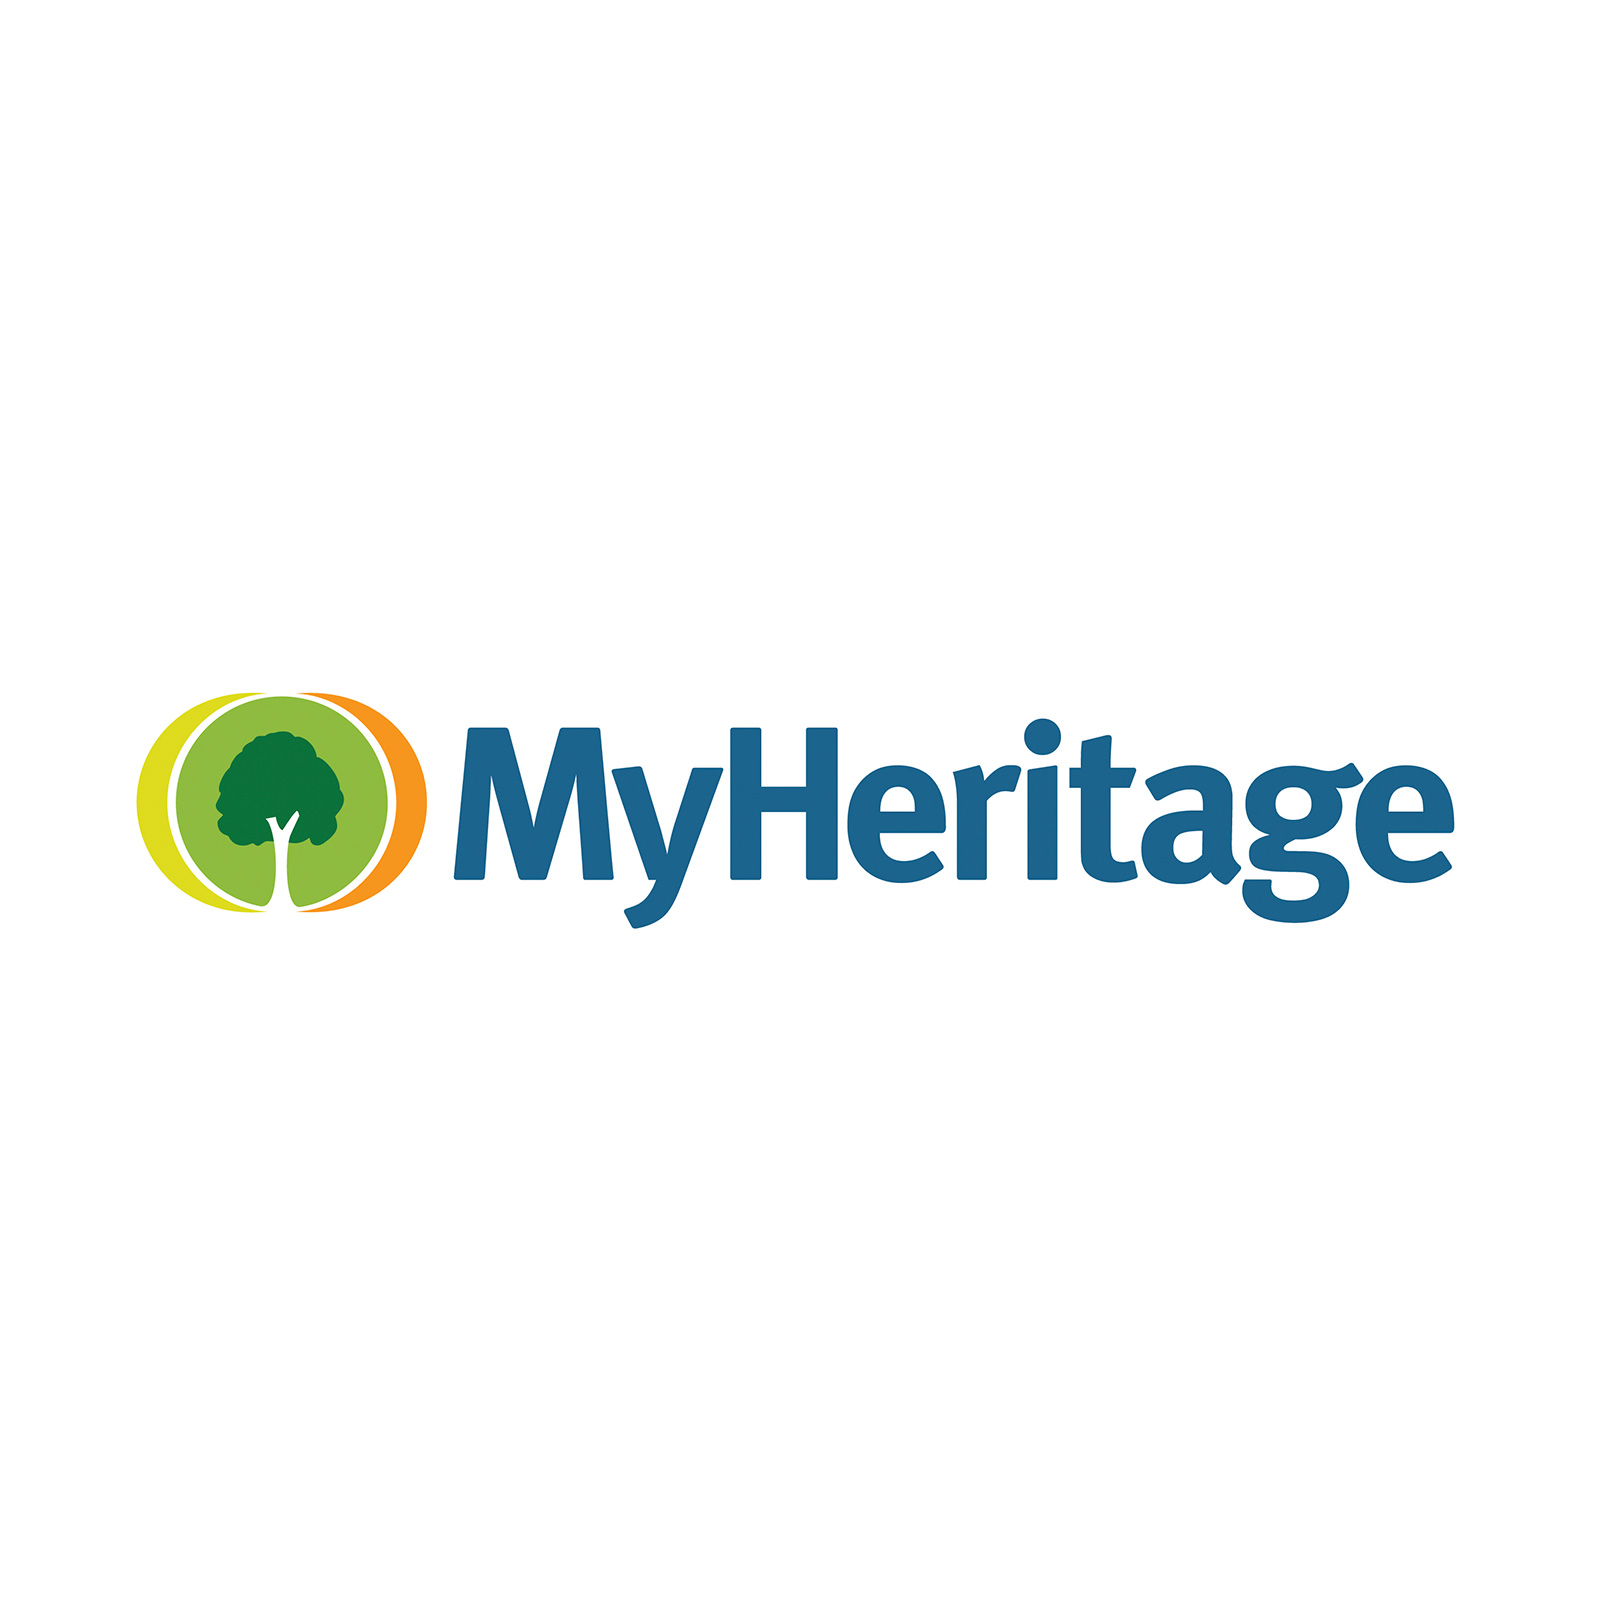 This is an online genealogy social platform which supports more than 42 languages and empowers its users to create family trees, upload and browse through family photos and manage their own family history. It could also be used by people to find their ancestors and get more information about them.